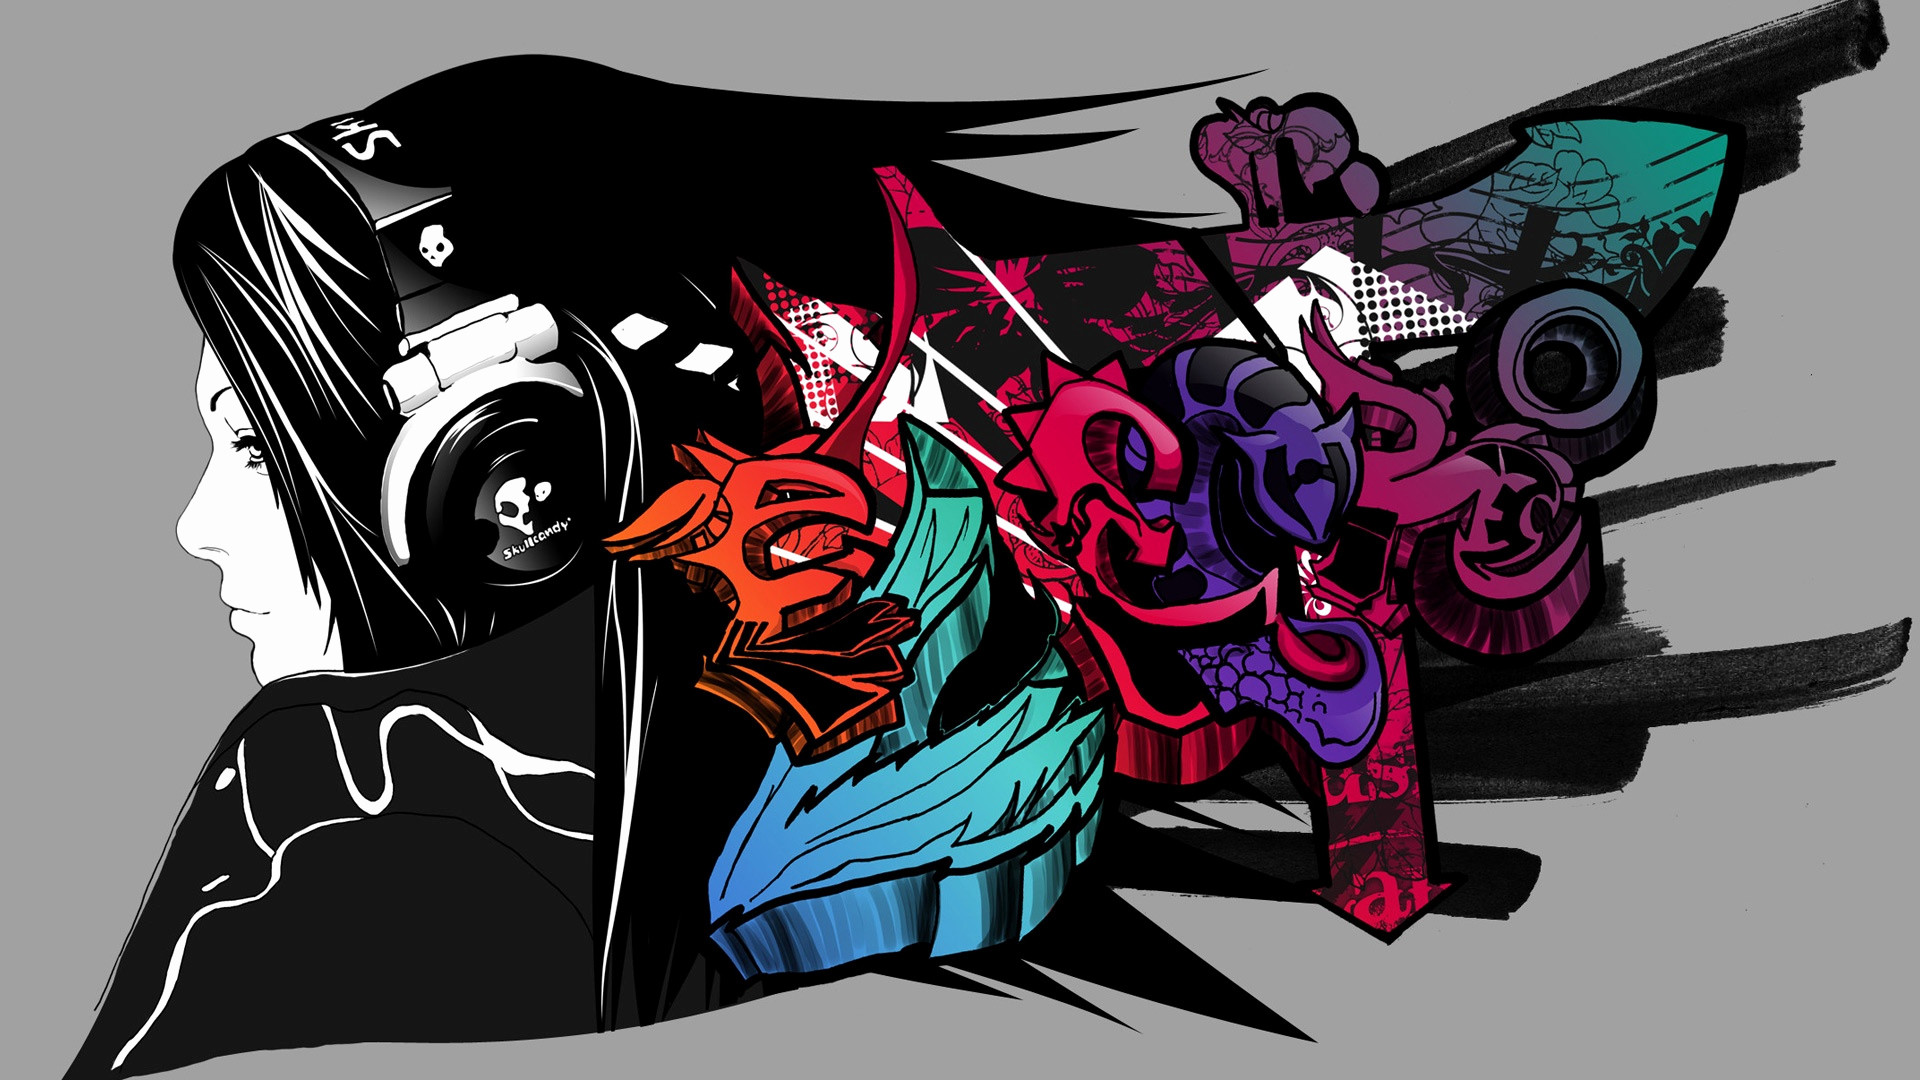 Res: 1920x1080, ... Music Graffiti Wallpaper Best Of Free Graffiti Art Music Wallpaper High  Definition Long Wallpapers ...